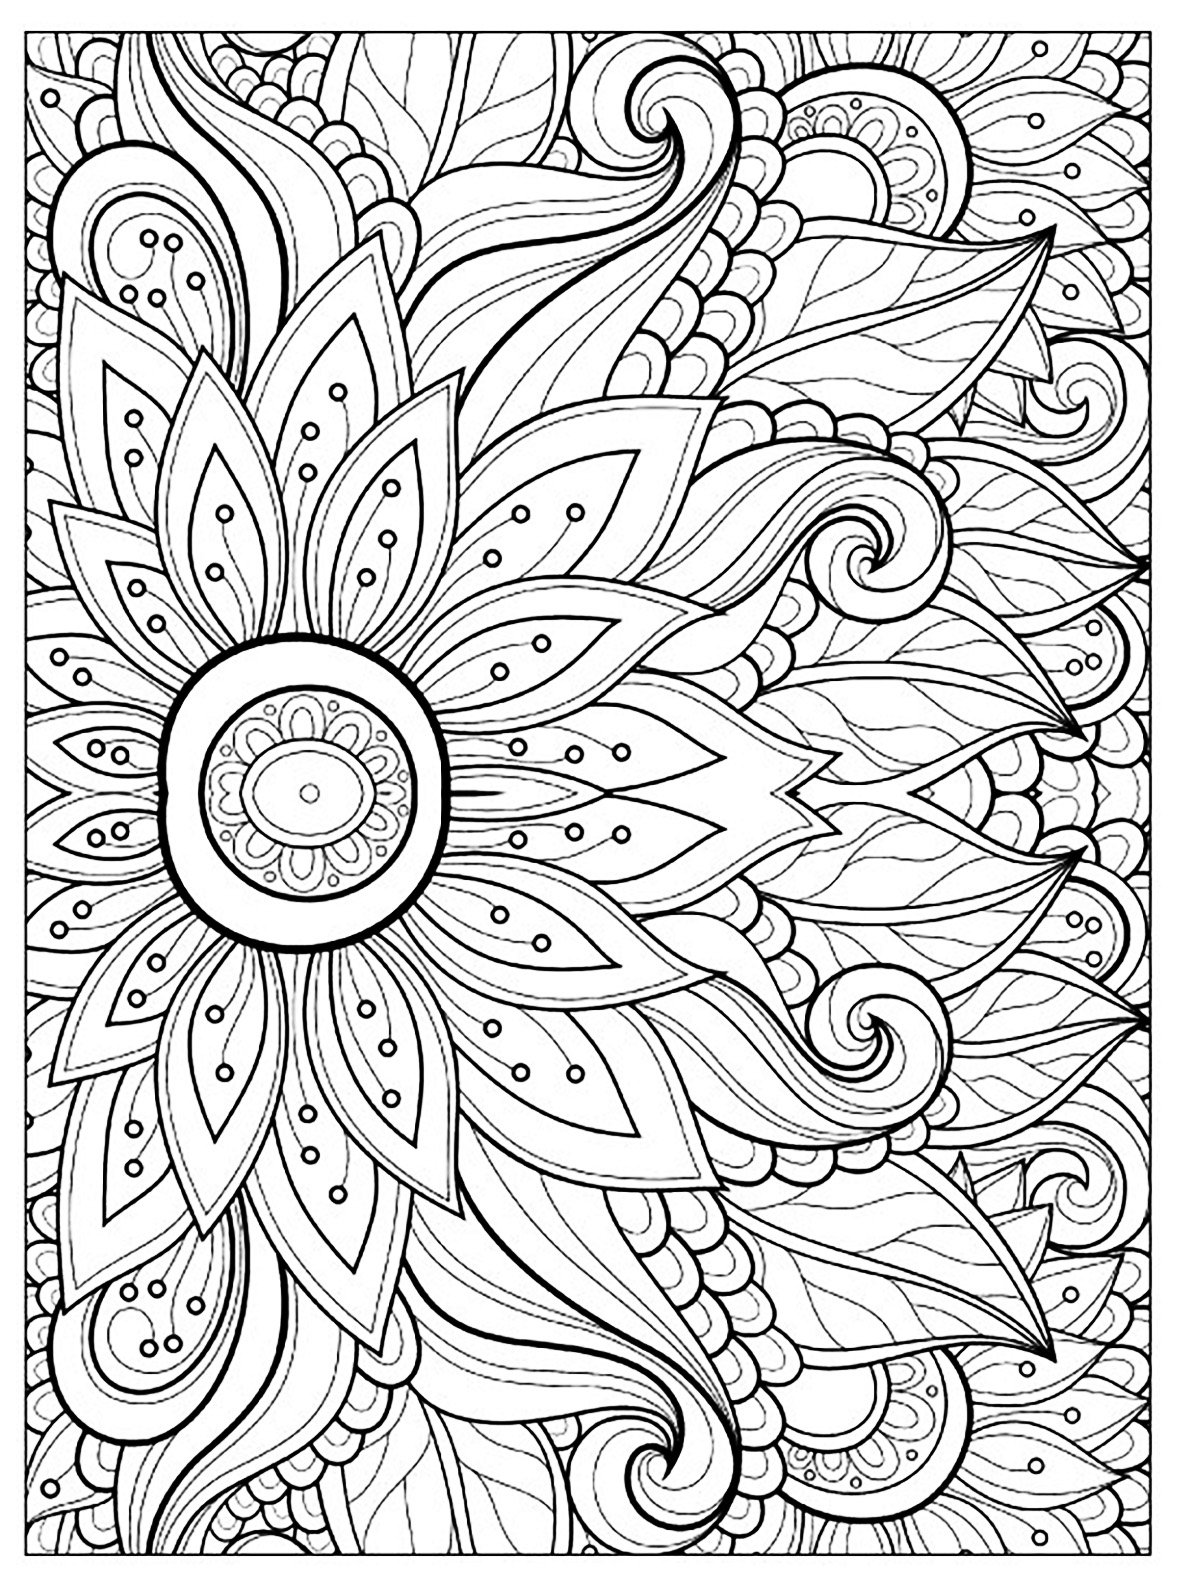 a flower coloring page free printable flower coloring pages for kids best page a flower coloring 1 1